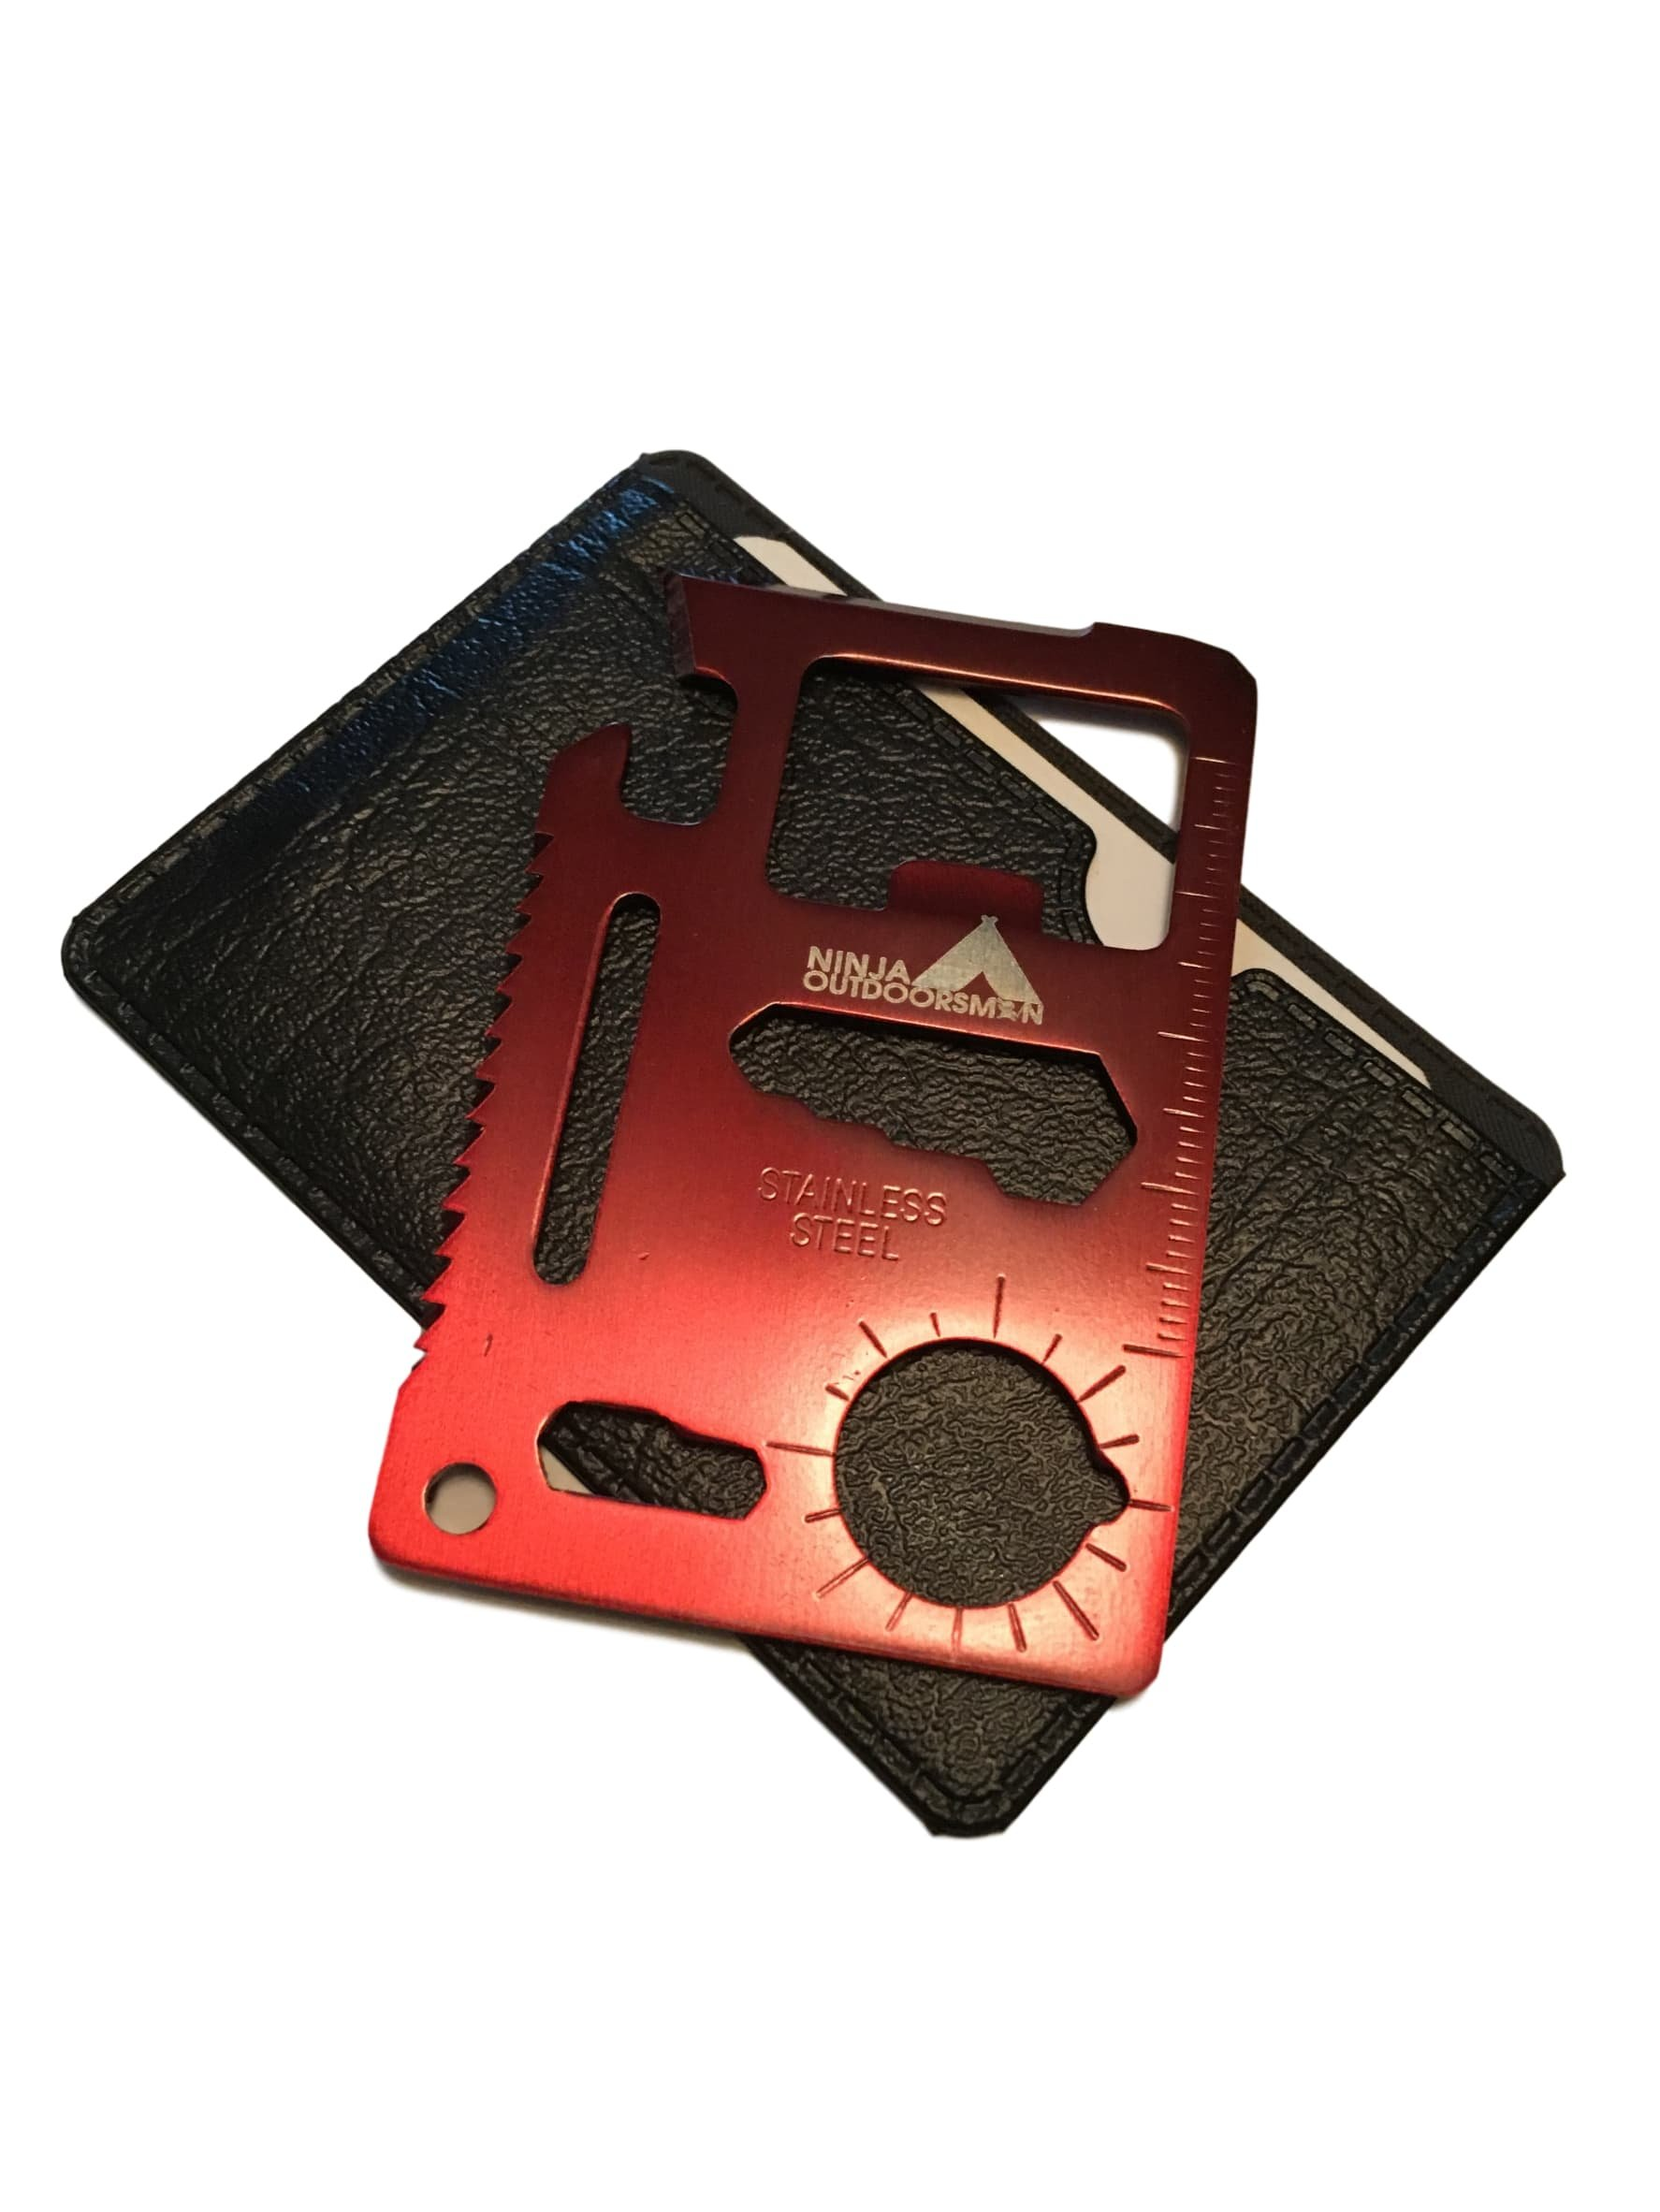 Ninja Outdoorsman 11 in 1 Stainless Steel Credit Card Pocket Sized Survival Multi tool (Single, Red)